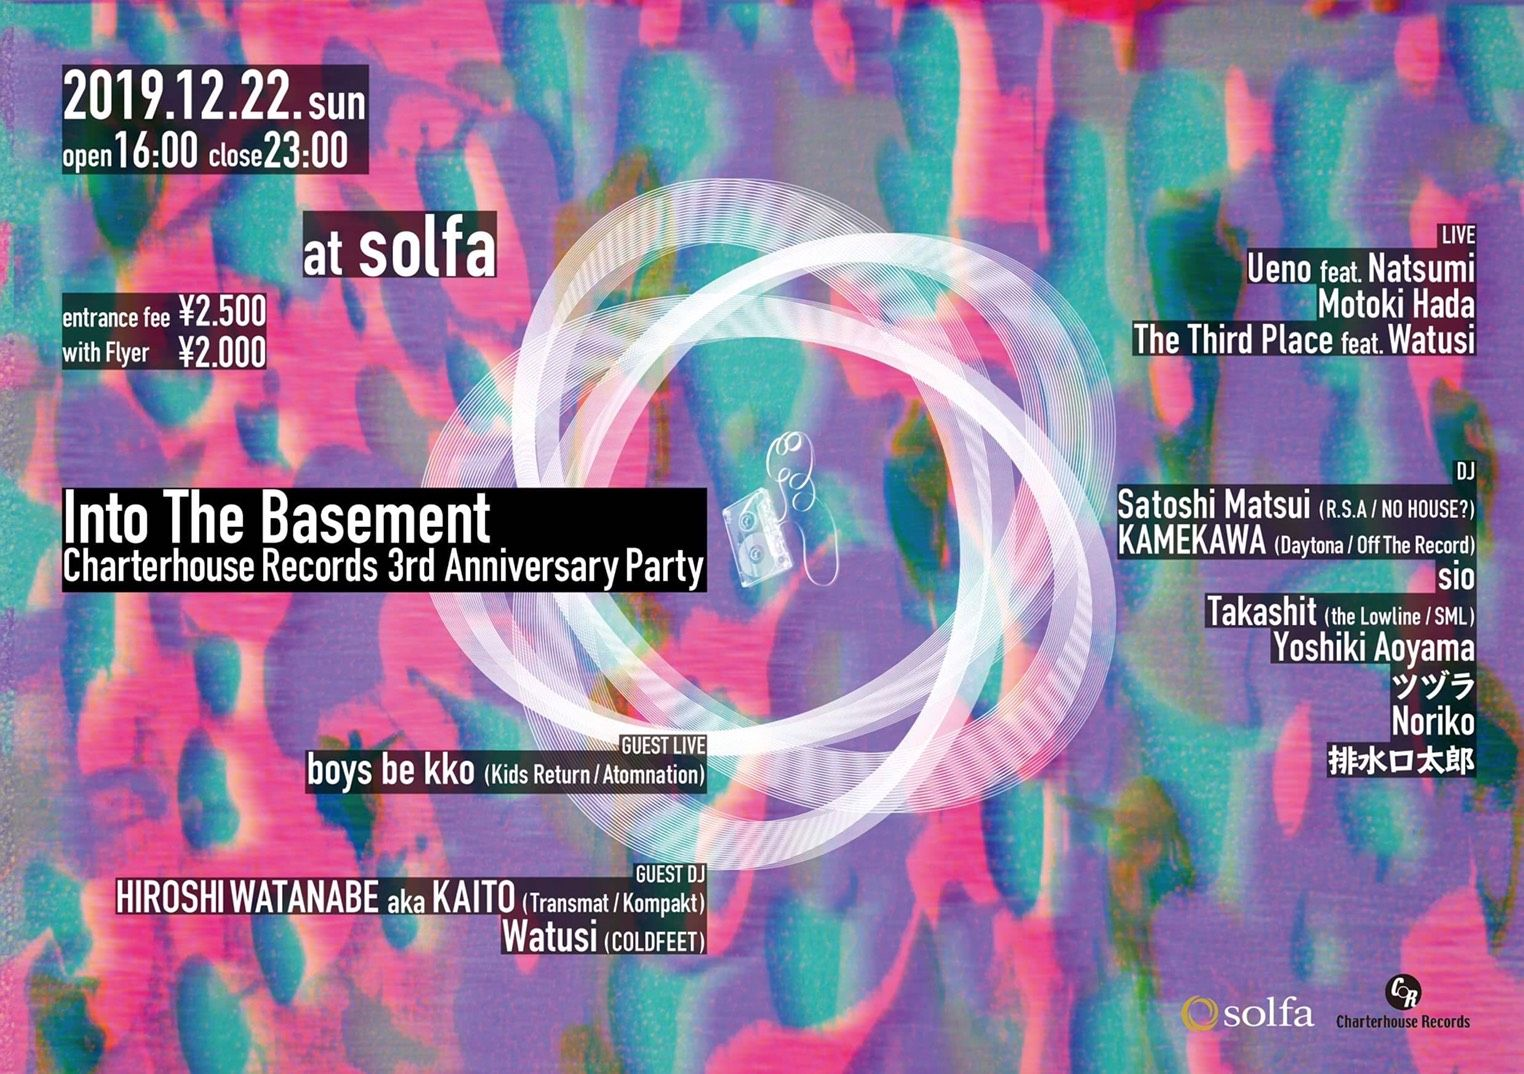 Into The Basement – Charterhouse Records 3rd Anniversary Party